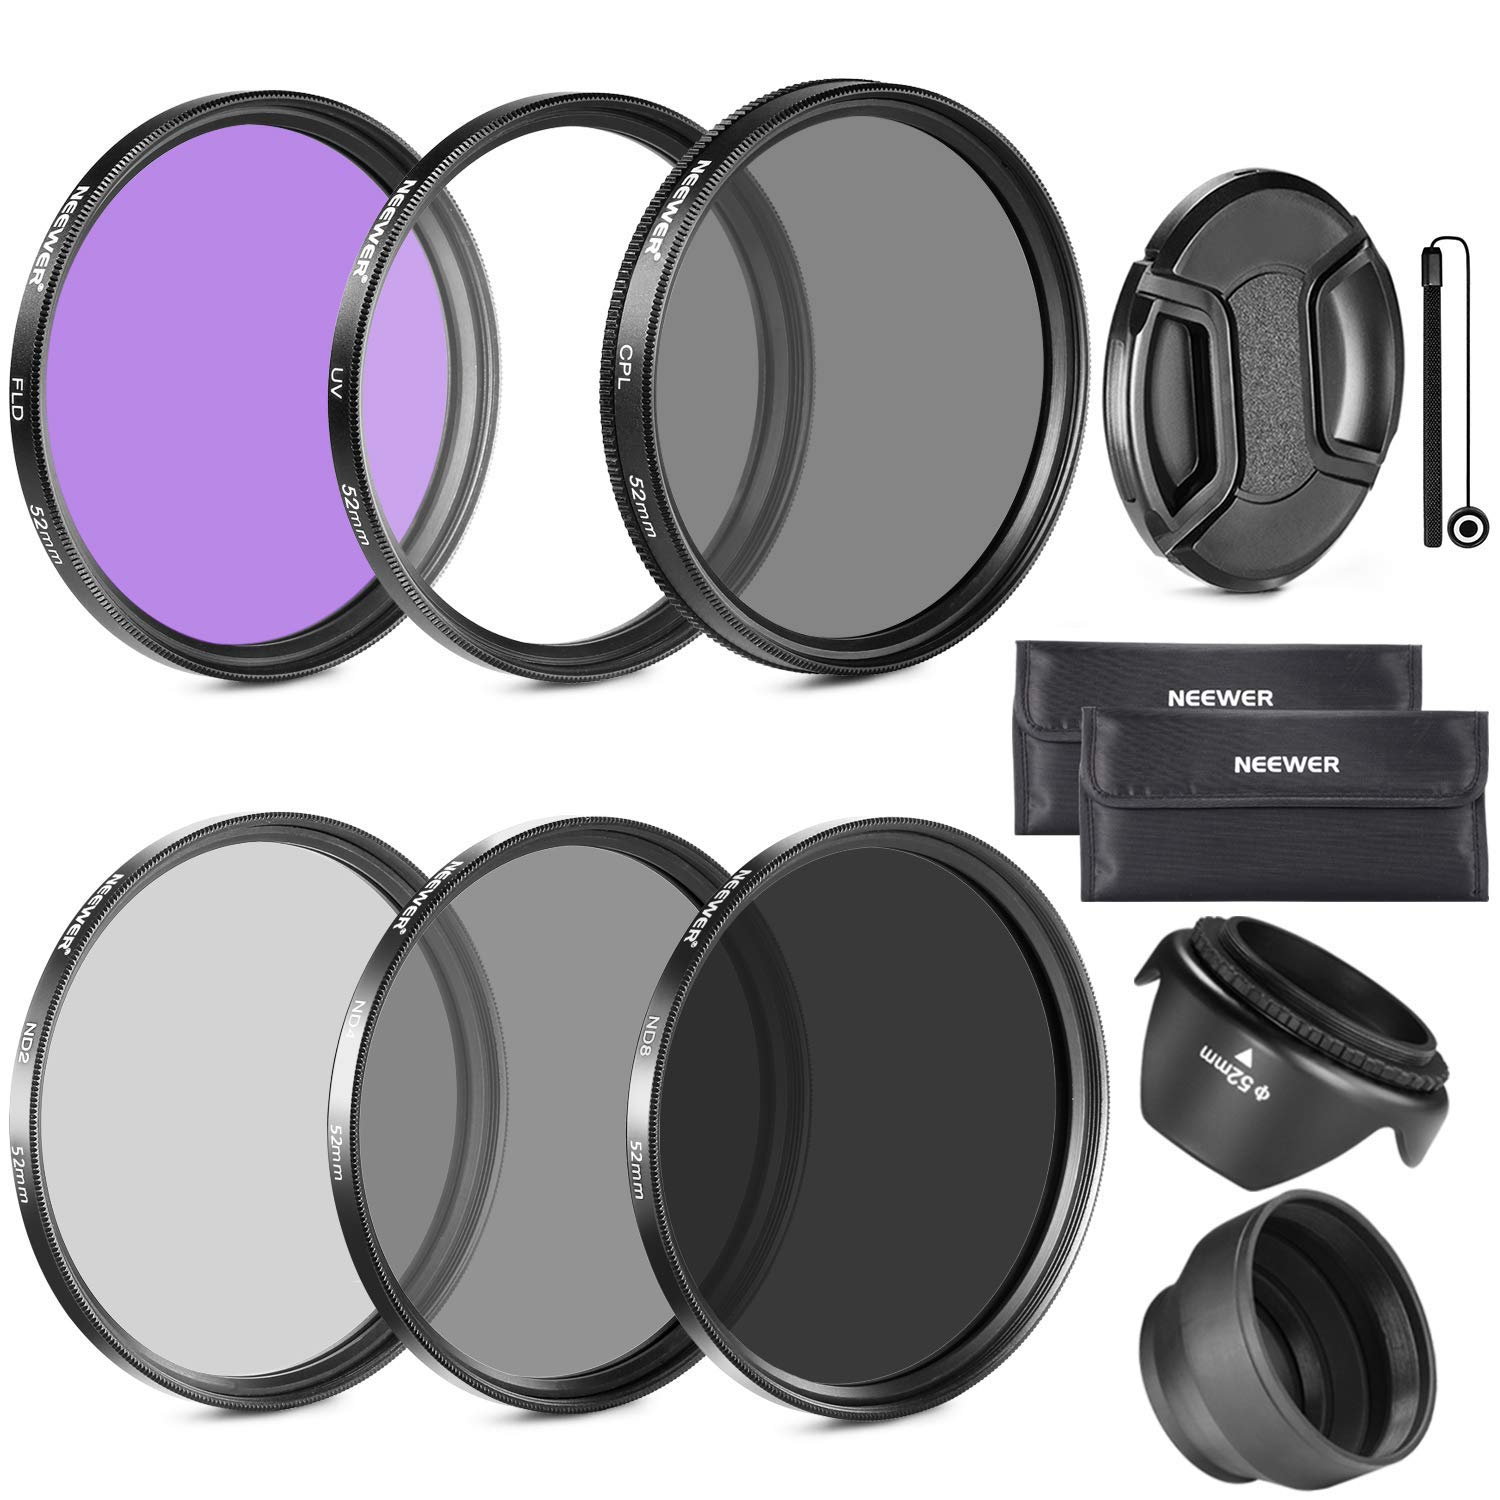 Neewer 58MM Lens Filter Accessory Kit (UV, CPL, FLD) for CANON EOS Rebel T5i T4i T3i T3 T2i T1i XT XTi XSi SL1 DSLR Cameras by Neewer